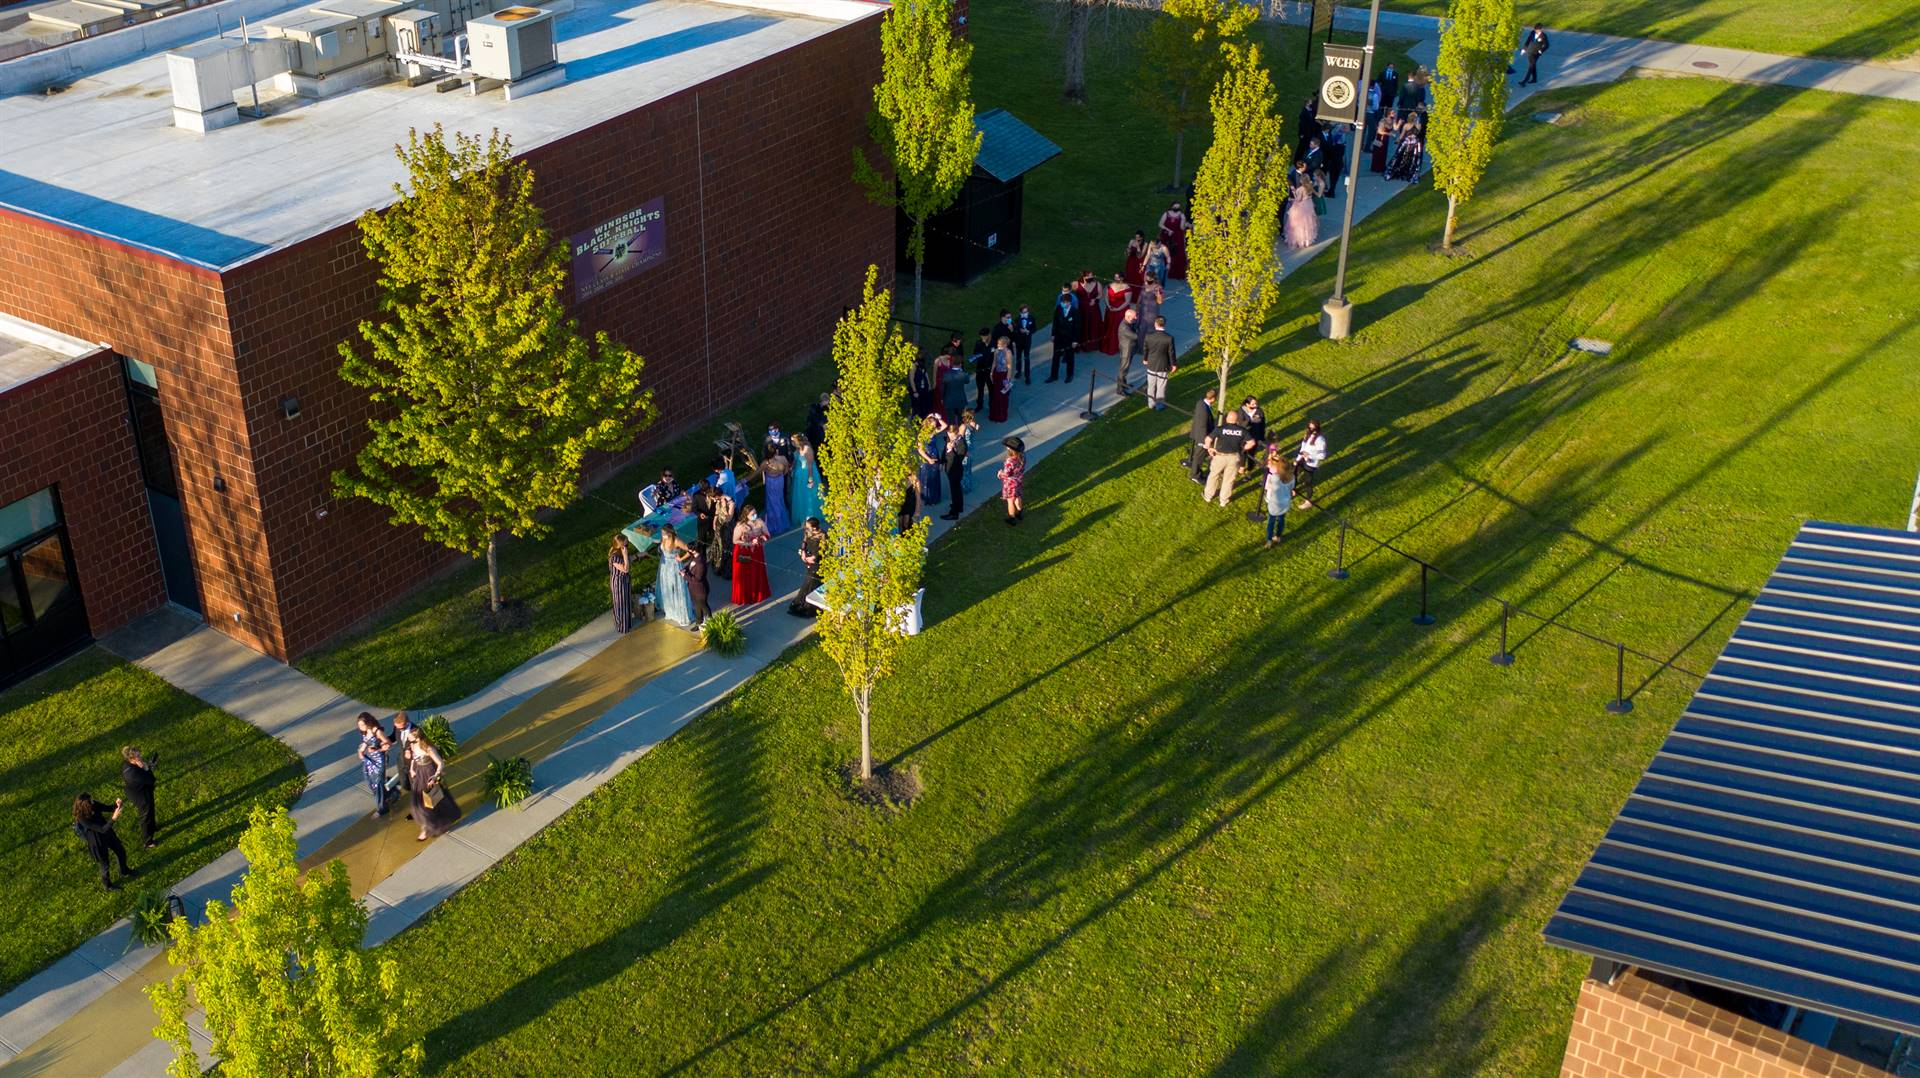 Arial view of WCHS with students